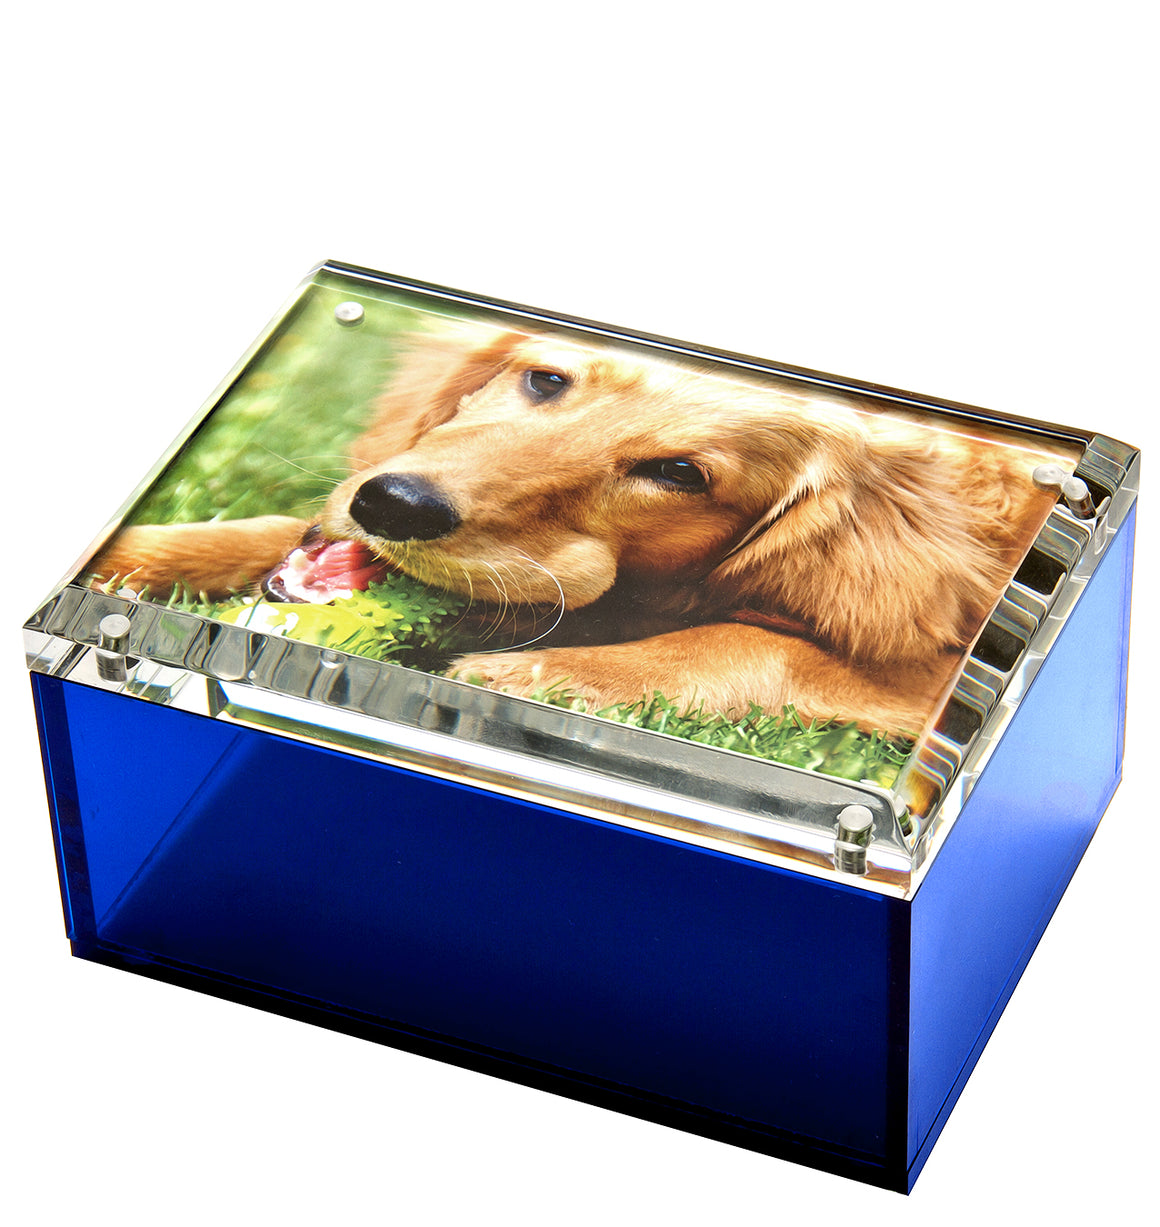 Medium photo box - sea glass blue - 5 x 7